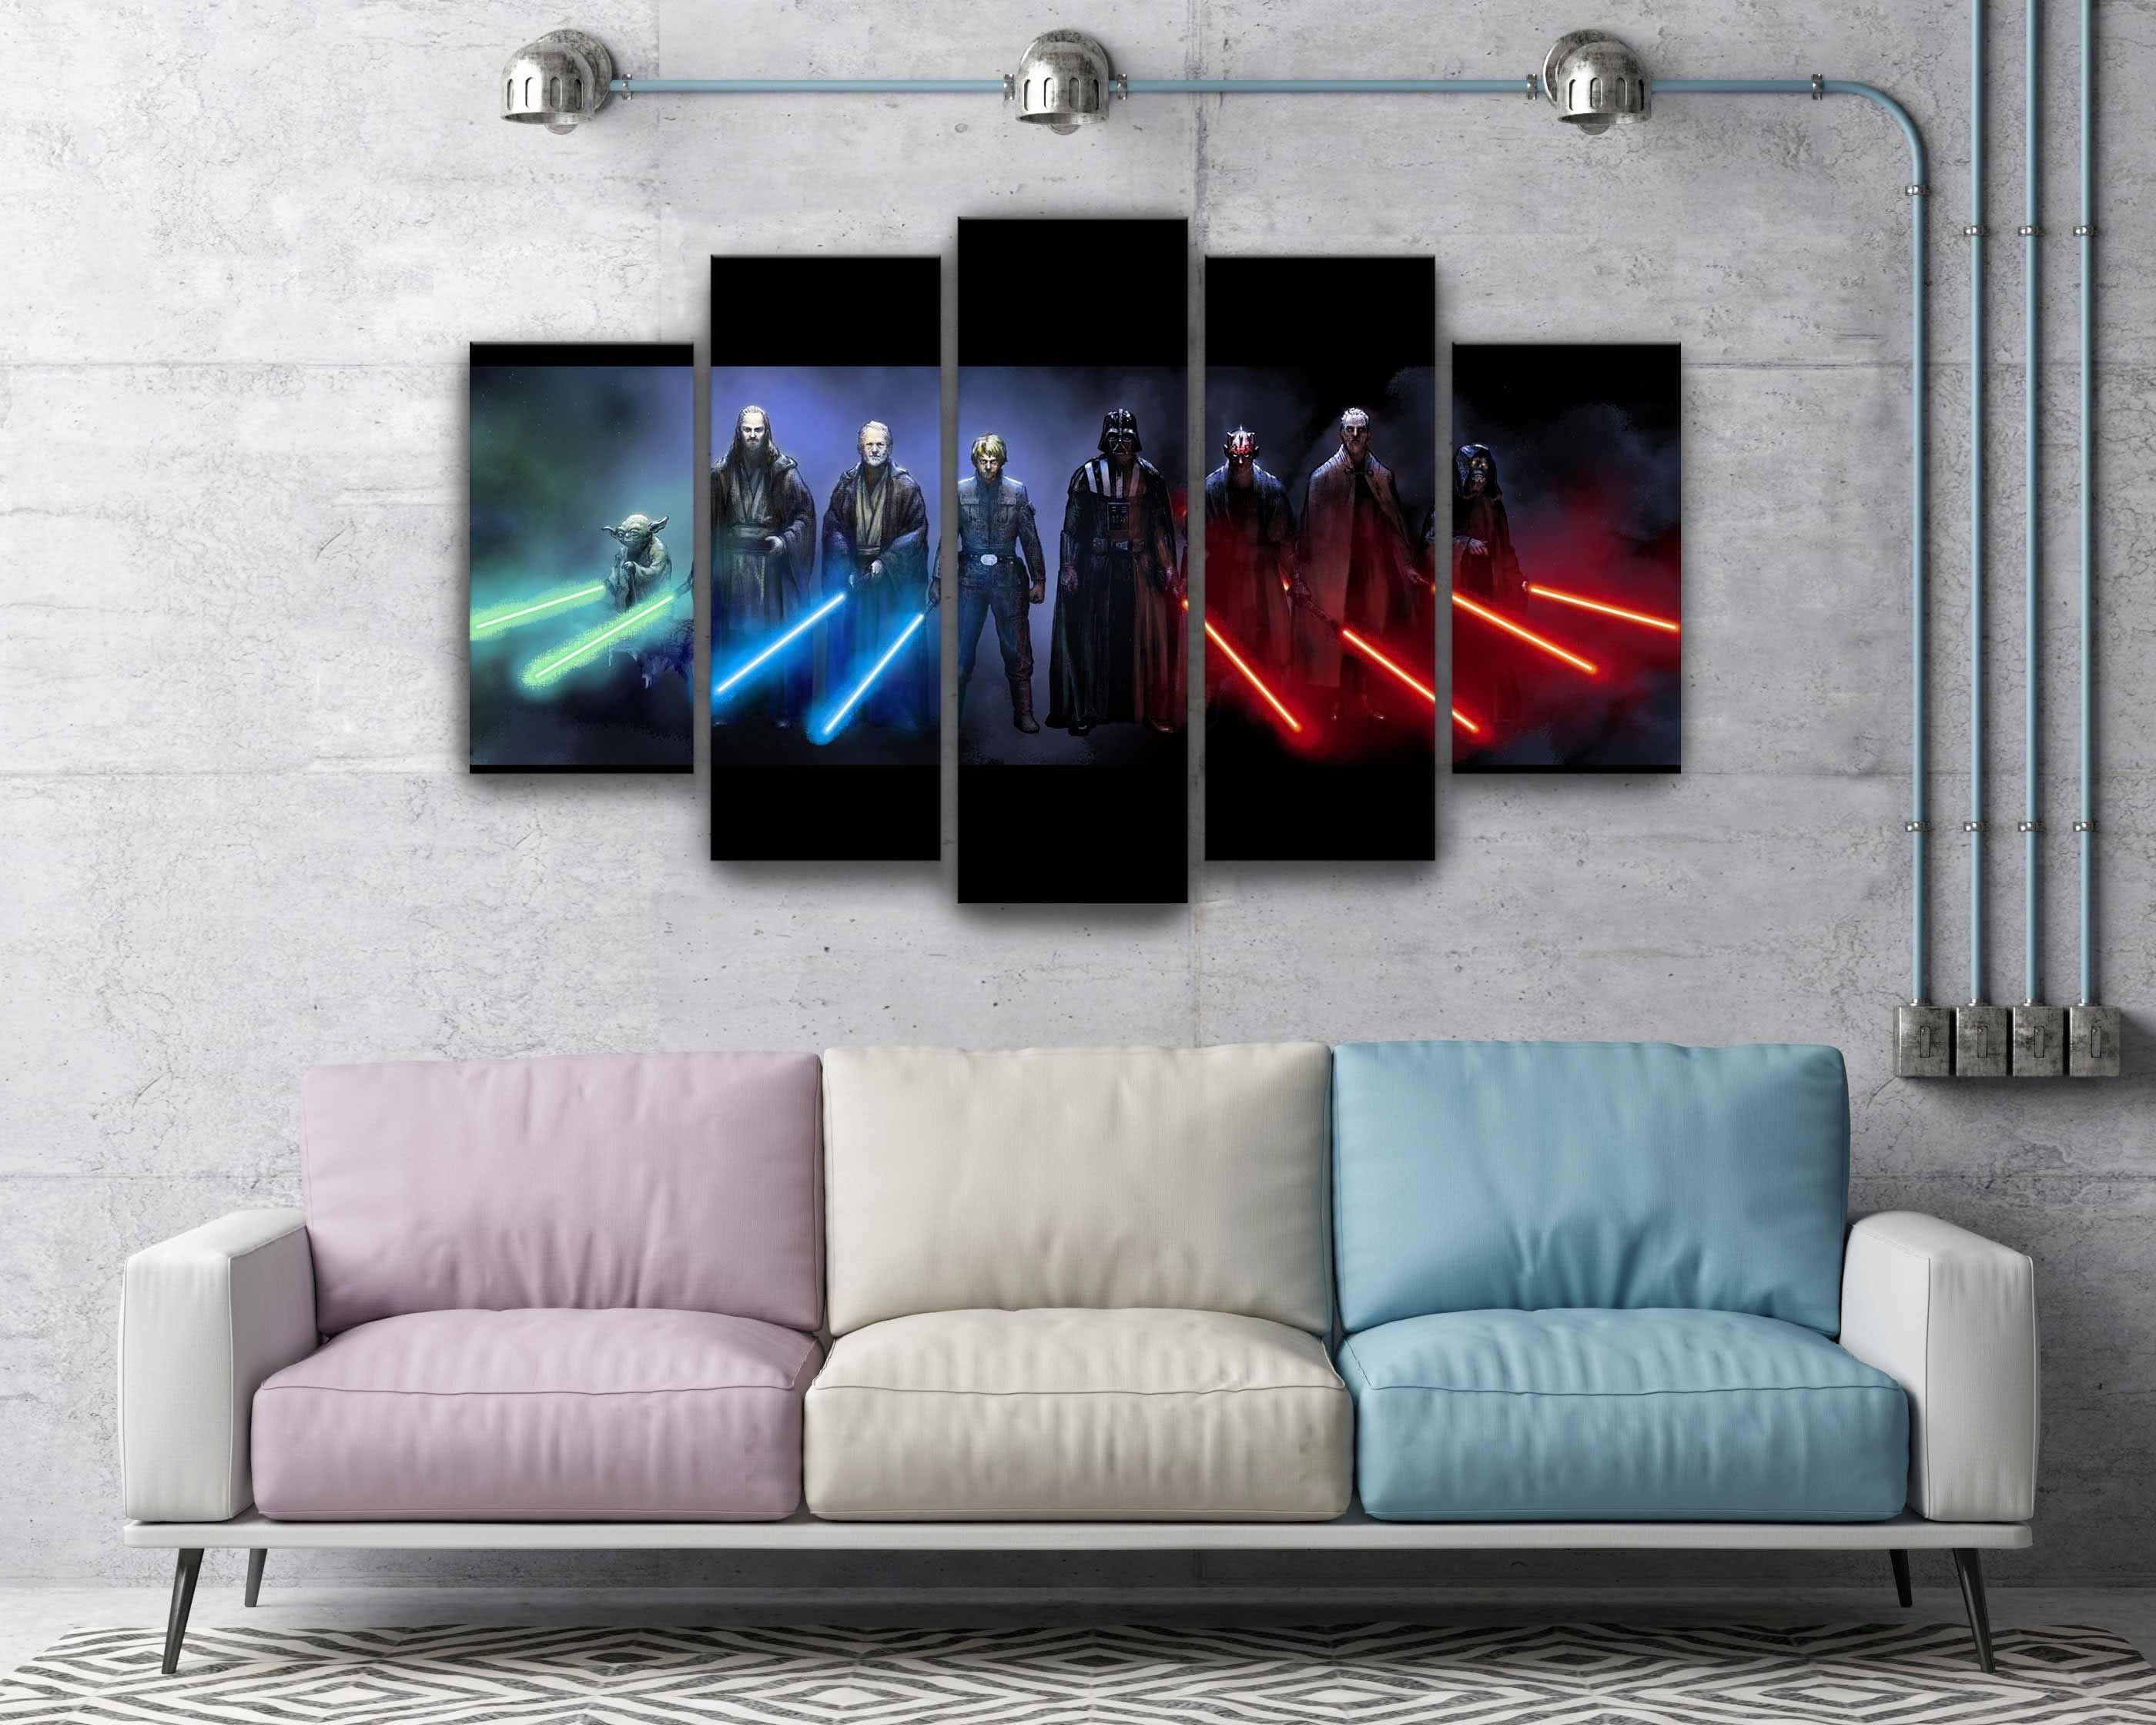 Best And Newest Star Wars Wall Art In Star Wars Darth Vader Luke Skywalker Jedi And Sith Lightsaber Canvas (View 1 of 15)